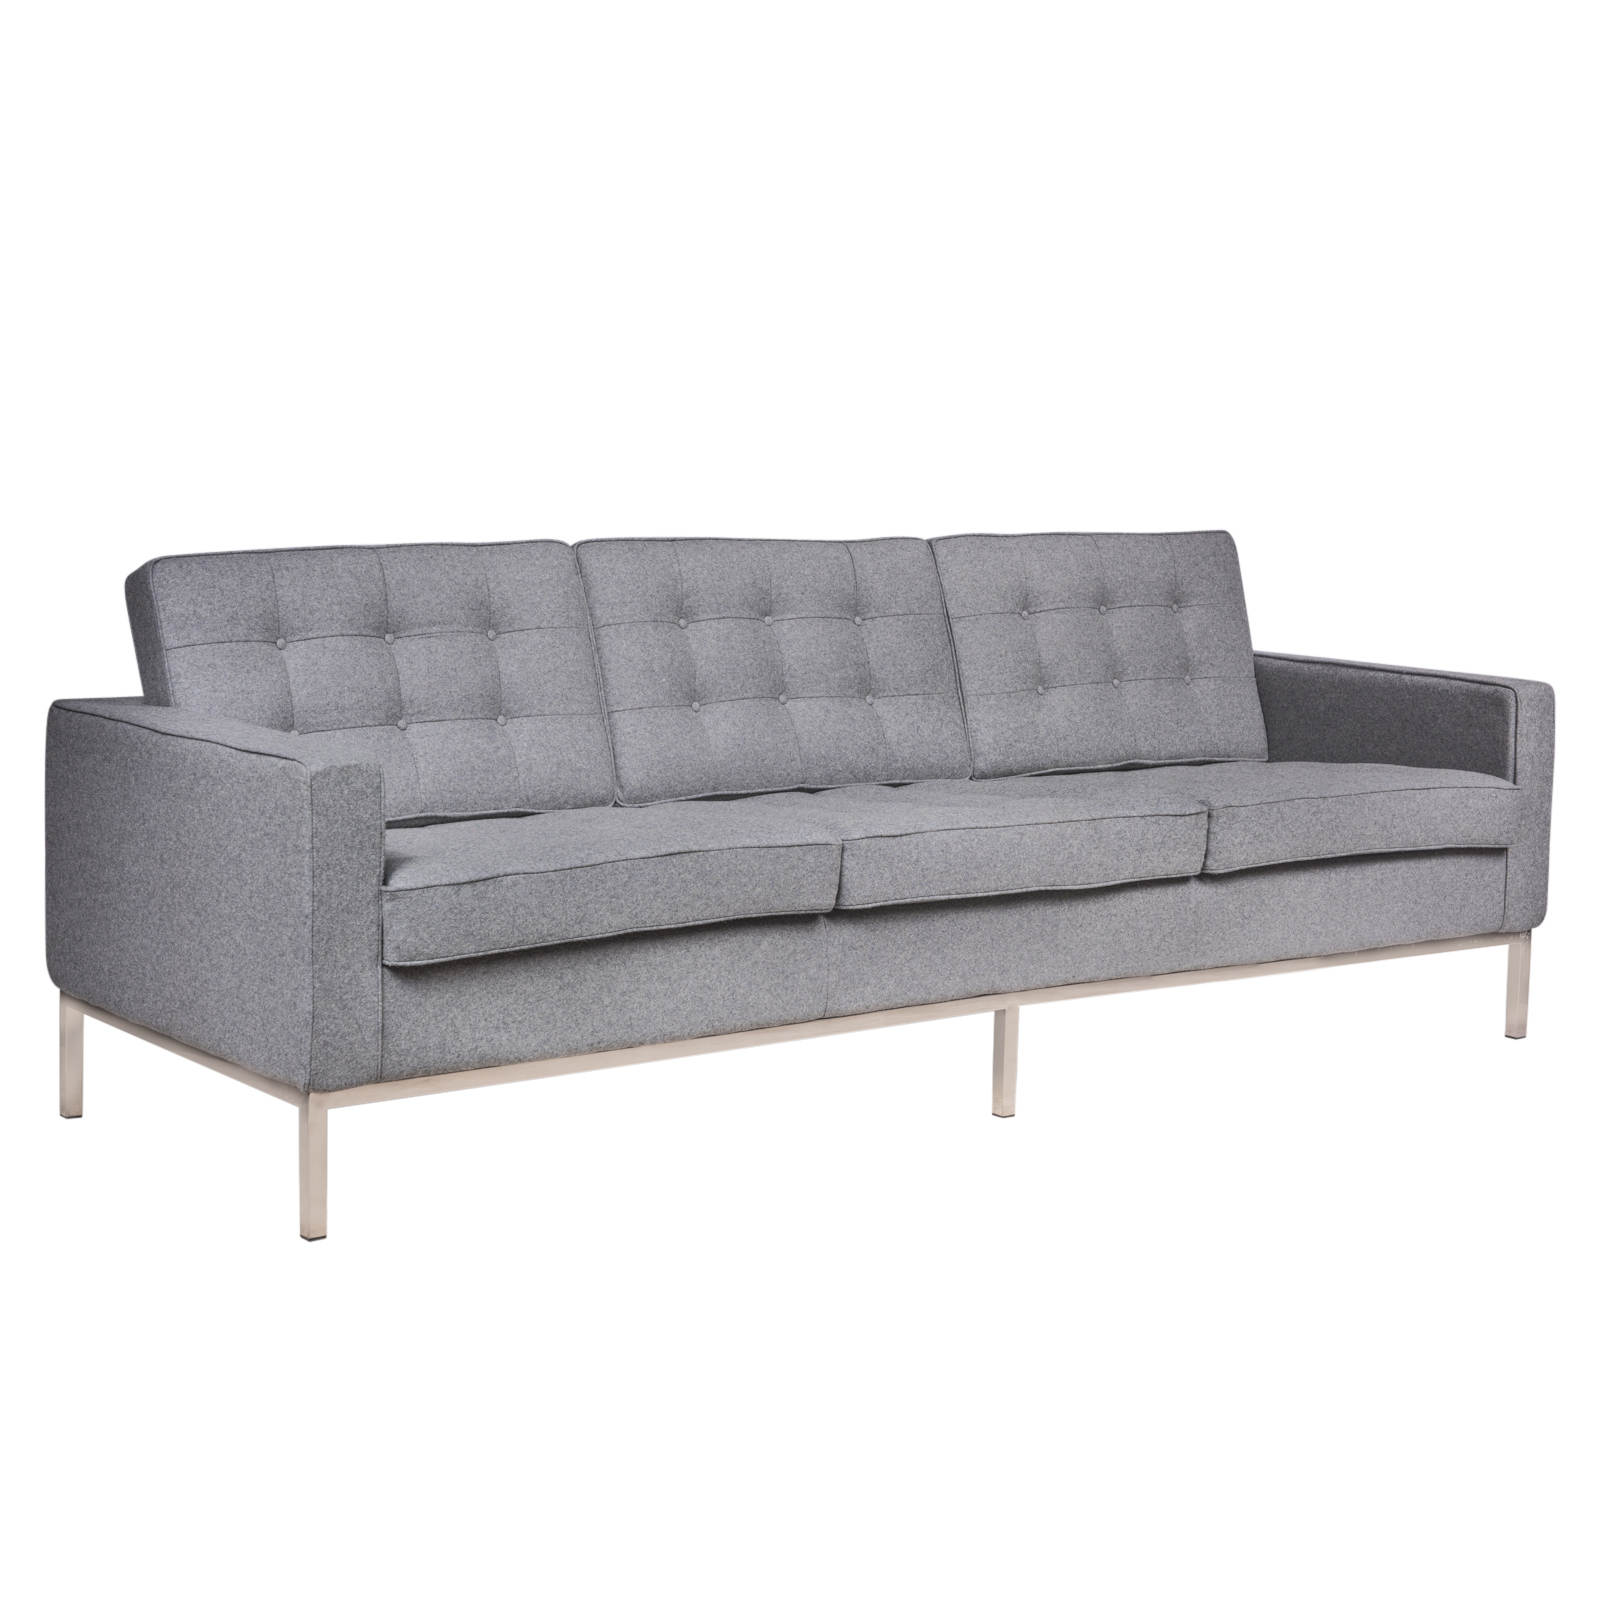 Leisuremod Florence Light Grey Fabric Sofa Click To Enlarge